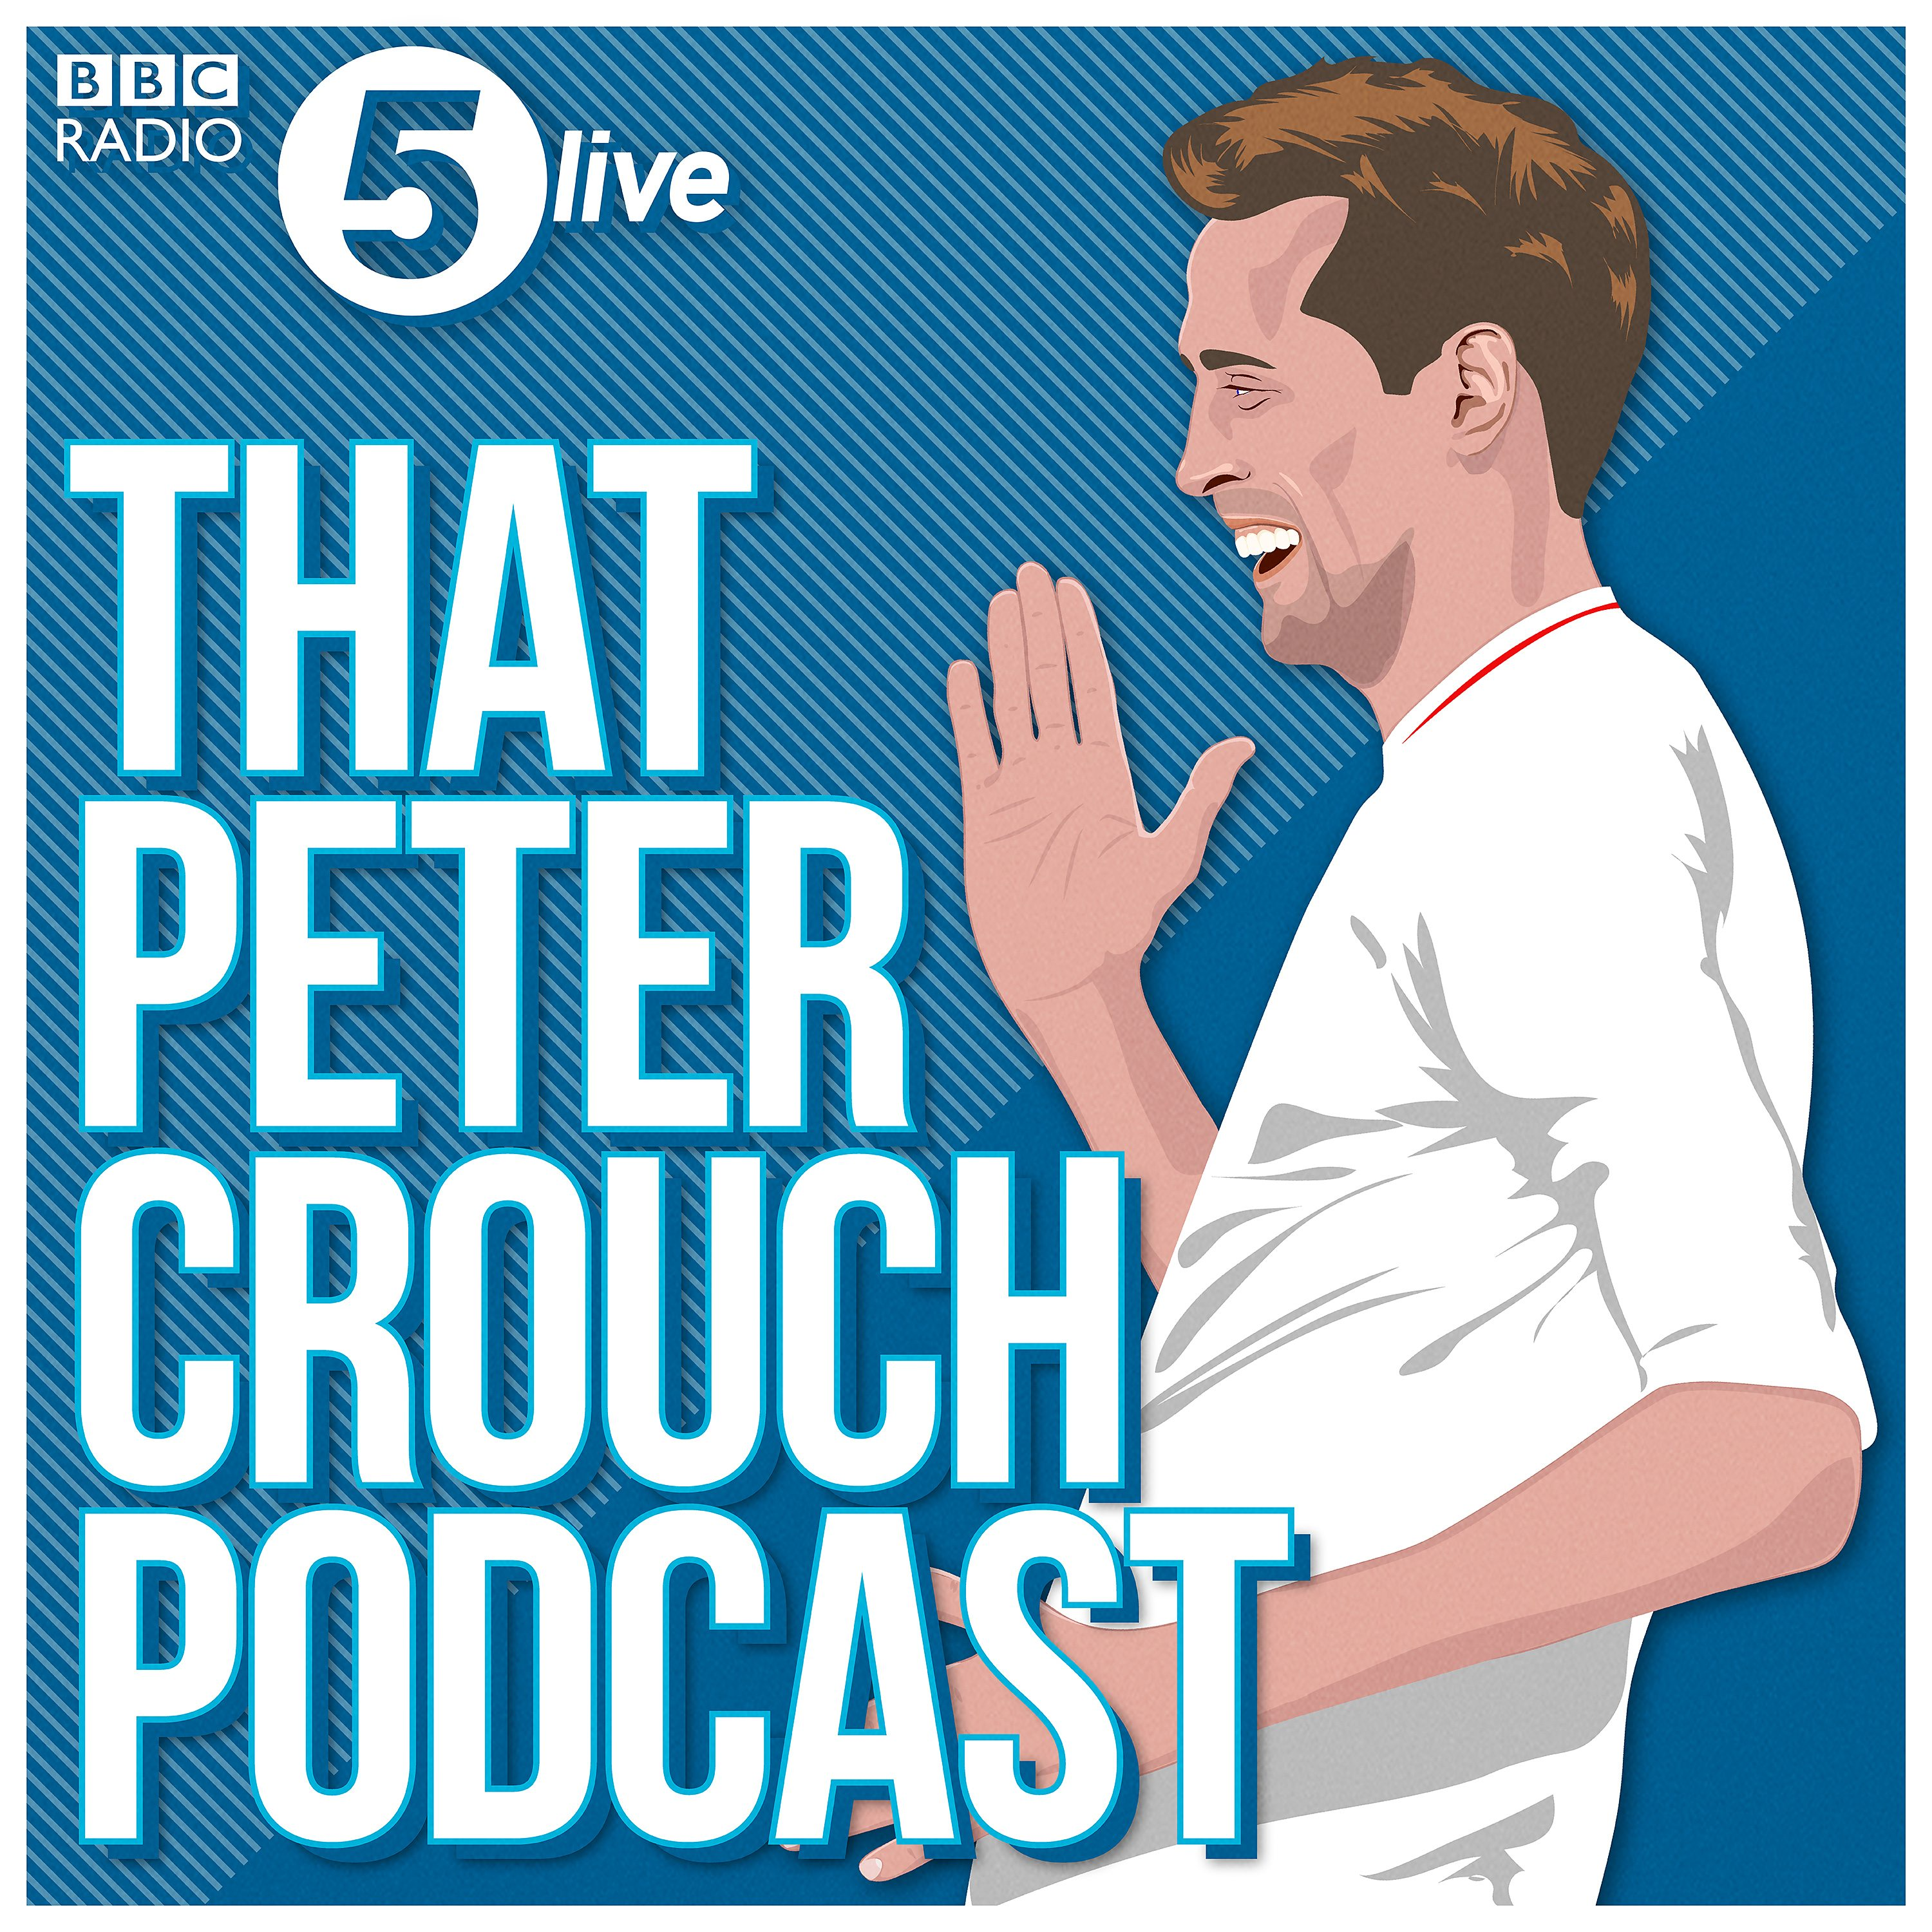 That Peter Crouch Podcast podcast